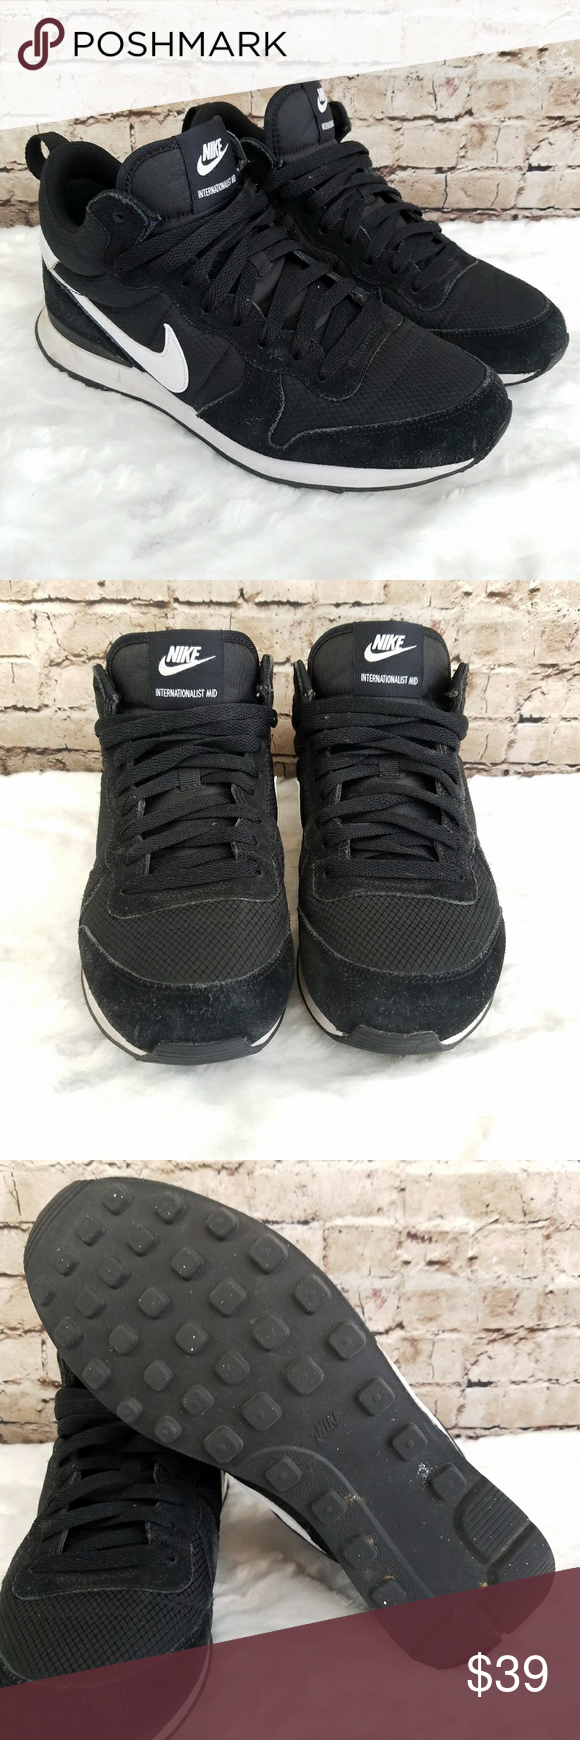 e80b501cb3c Nike Internationalist Mid Sneakers